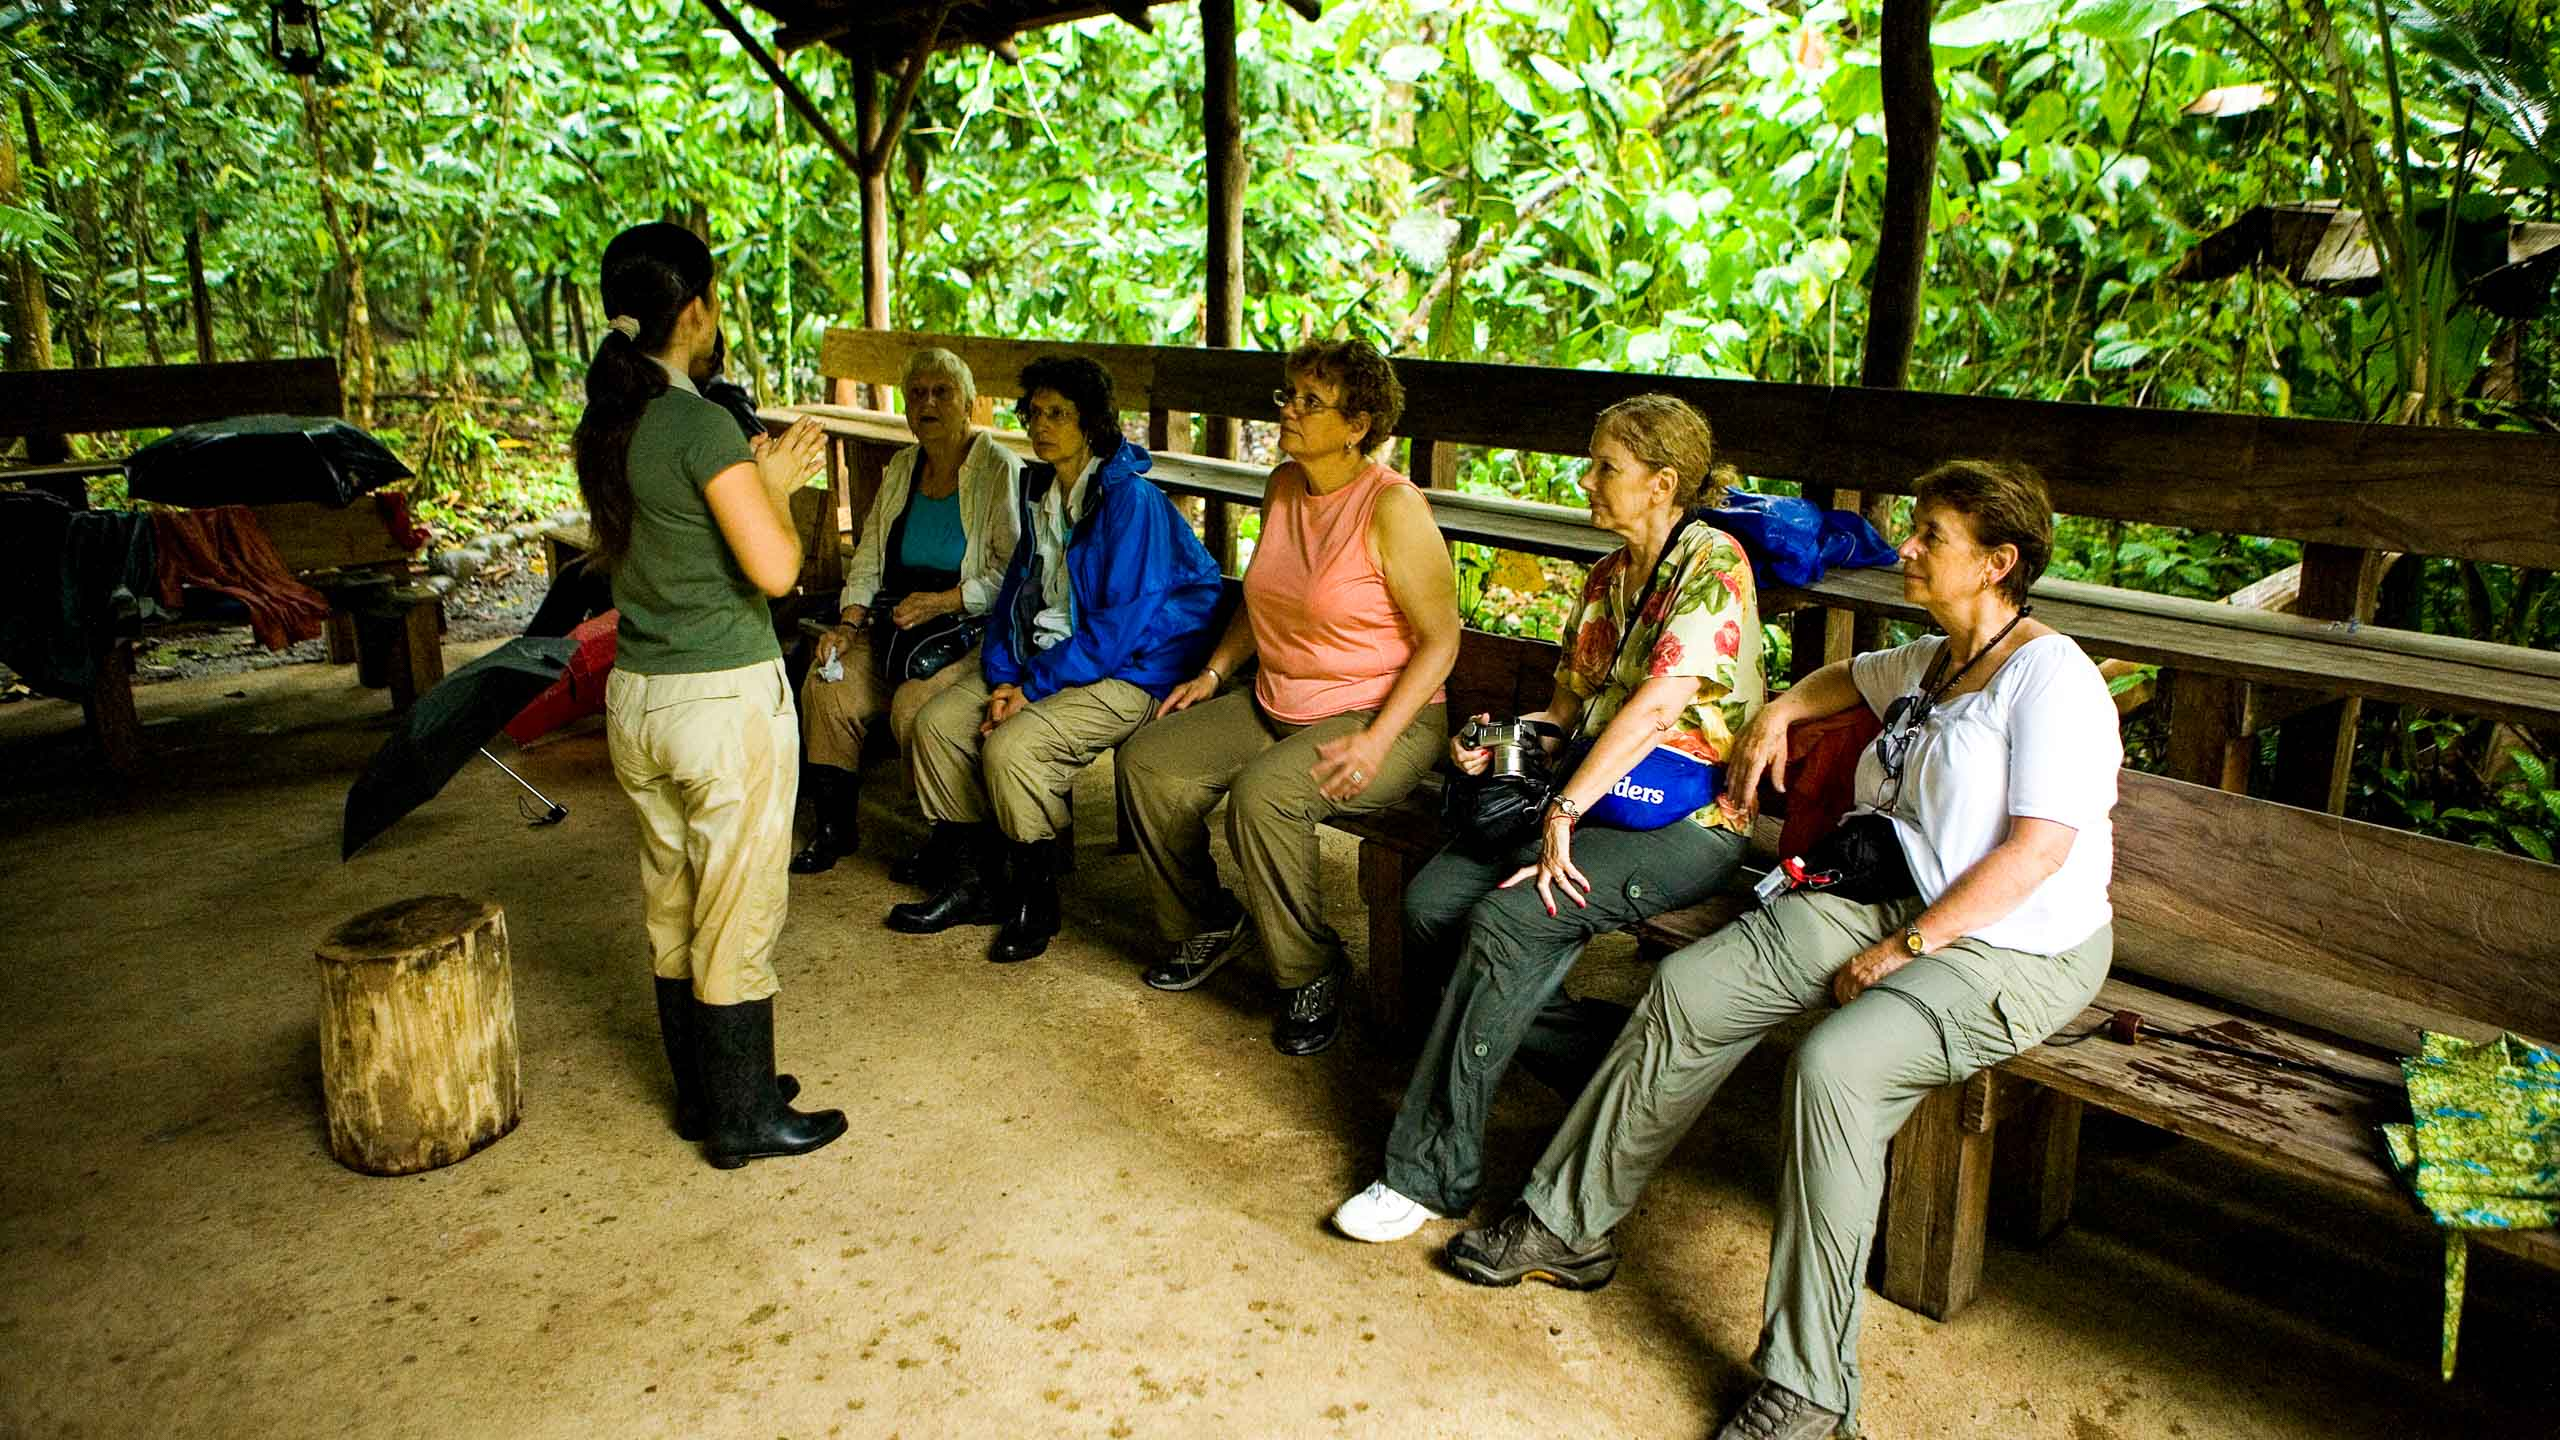 Tour guide speaks to group of travelers in Costa Rica